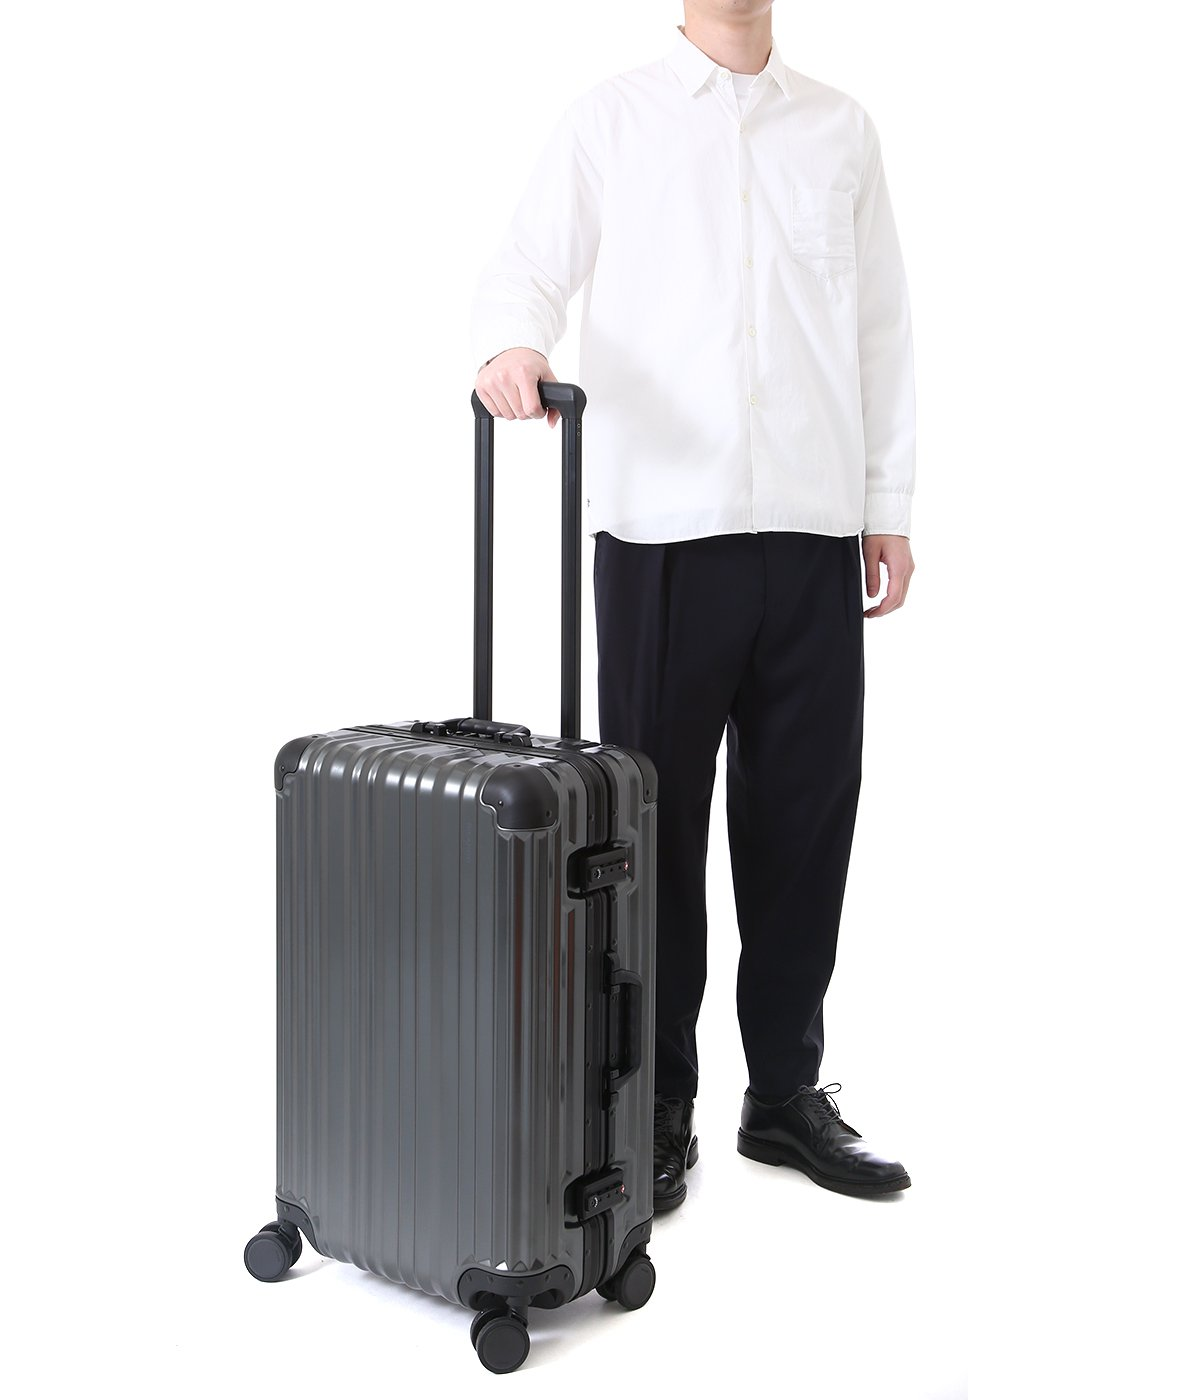 Aileron Vault 24-inch Spinner Suitcase